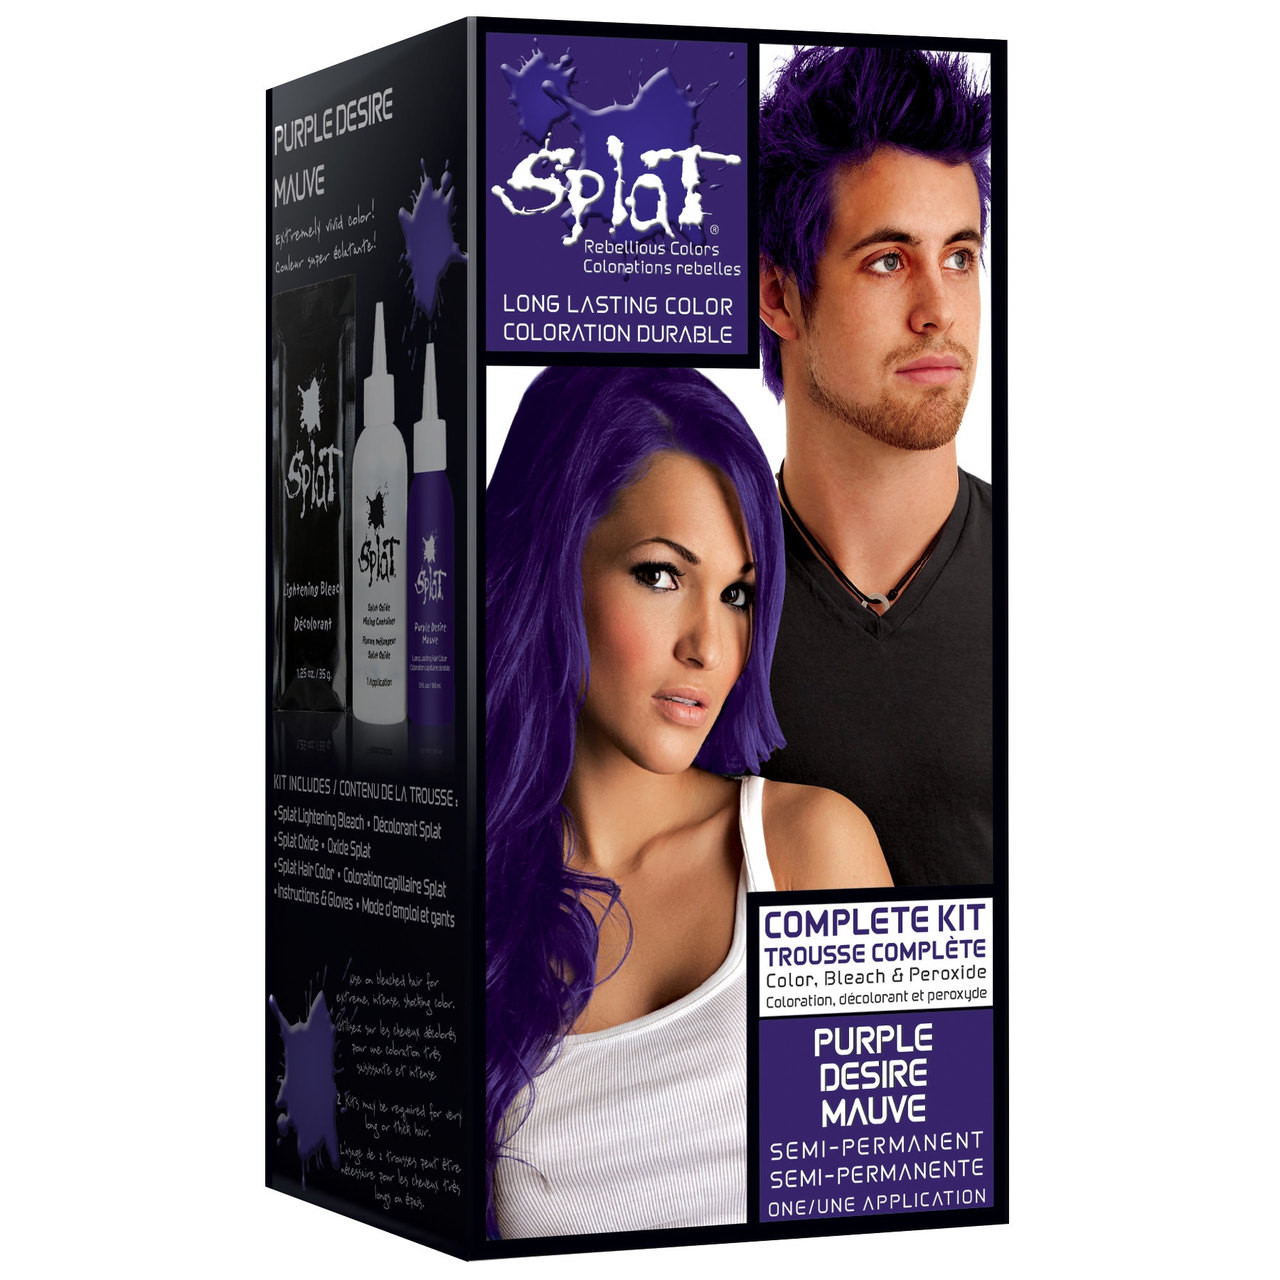 splat rebellious colors semipermanent hair dye purple